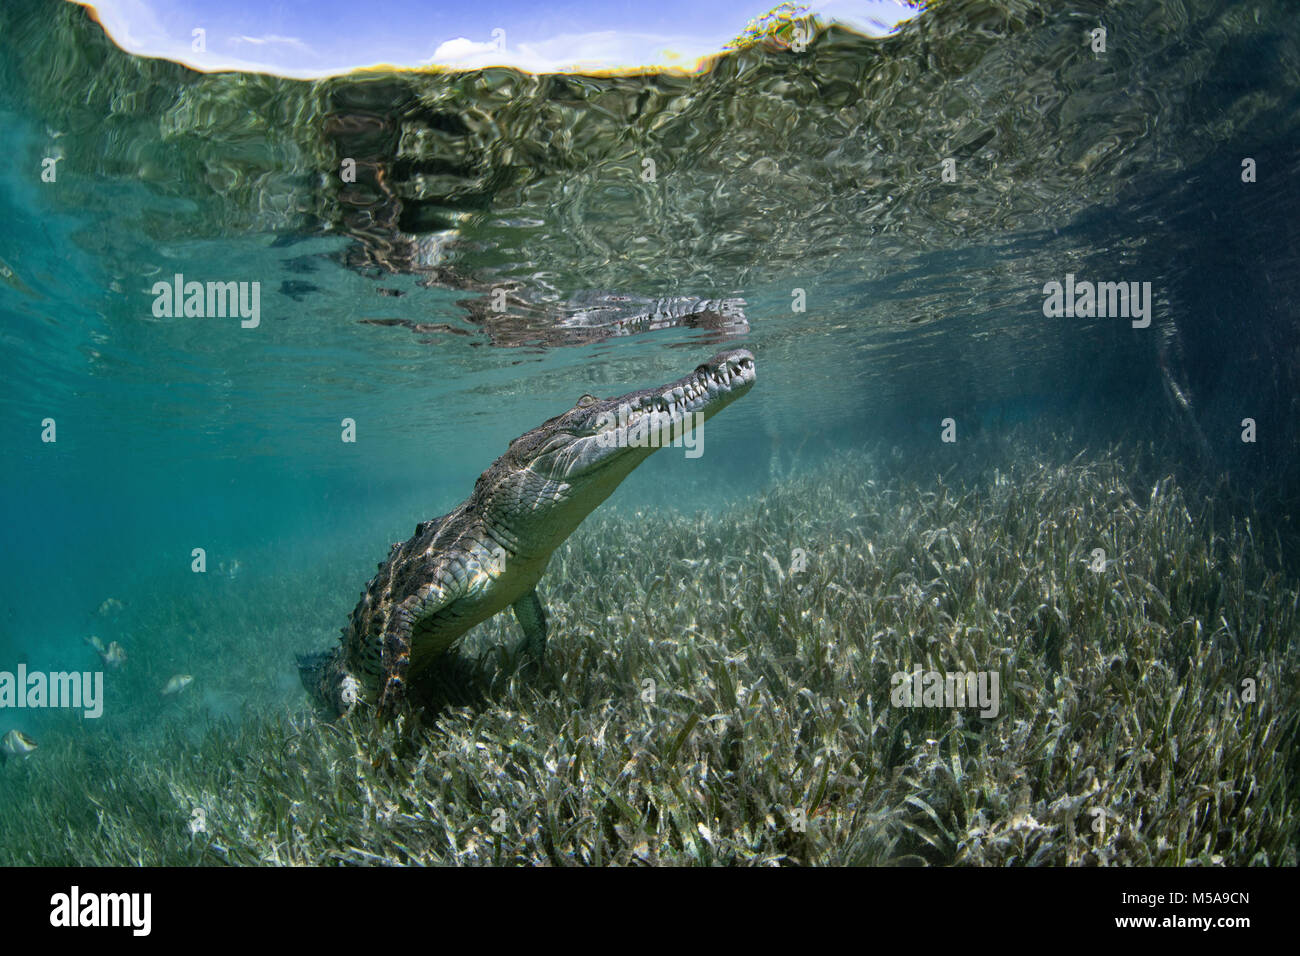 A captive crocodile underwater, snout in the surface of the water at the Garden of the Queens marine park, Cuba. - Stock Image